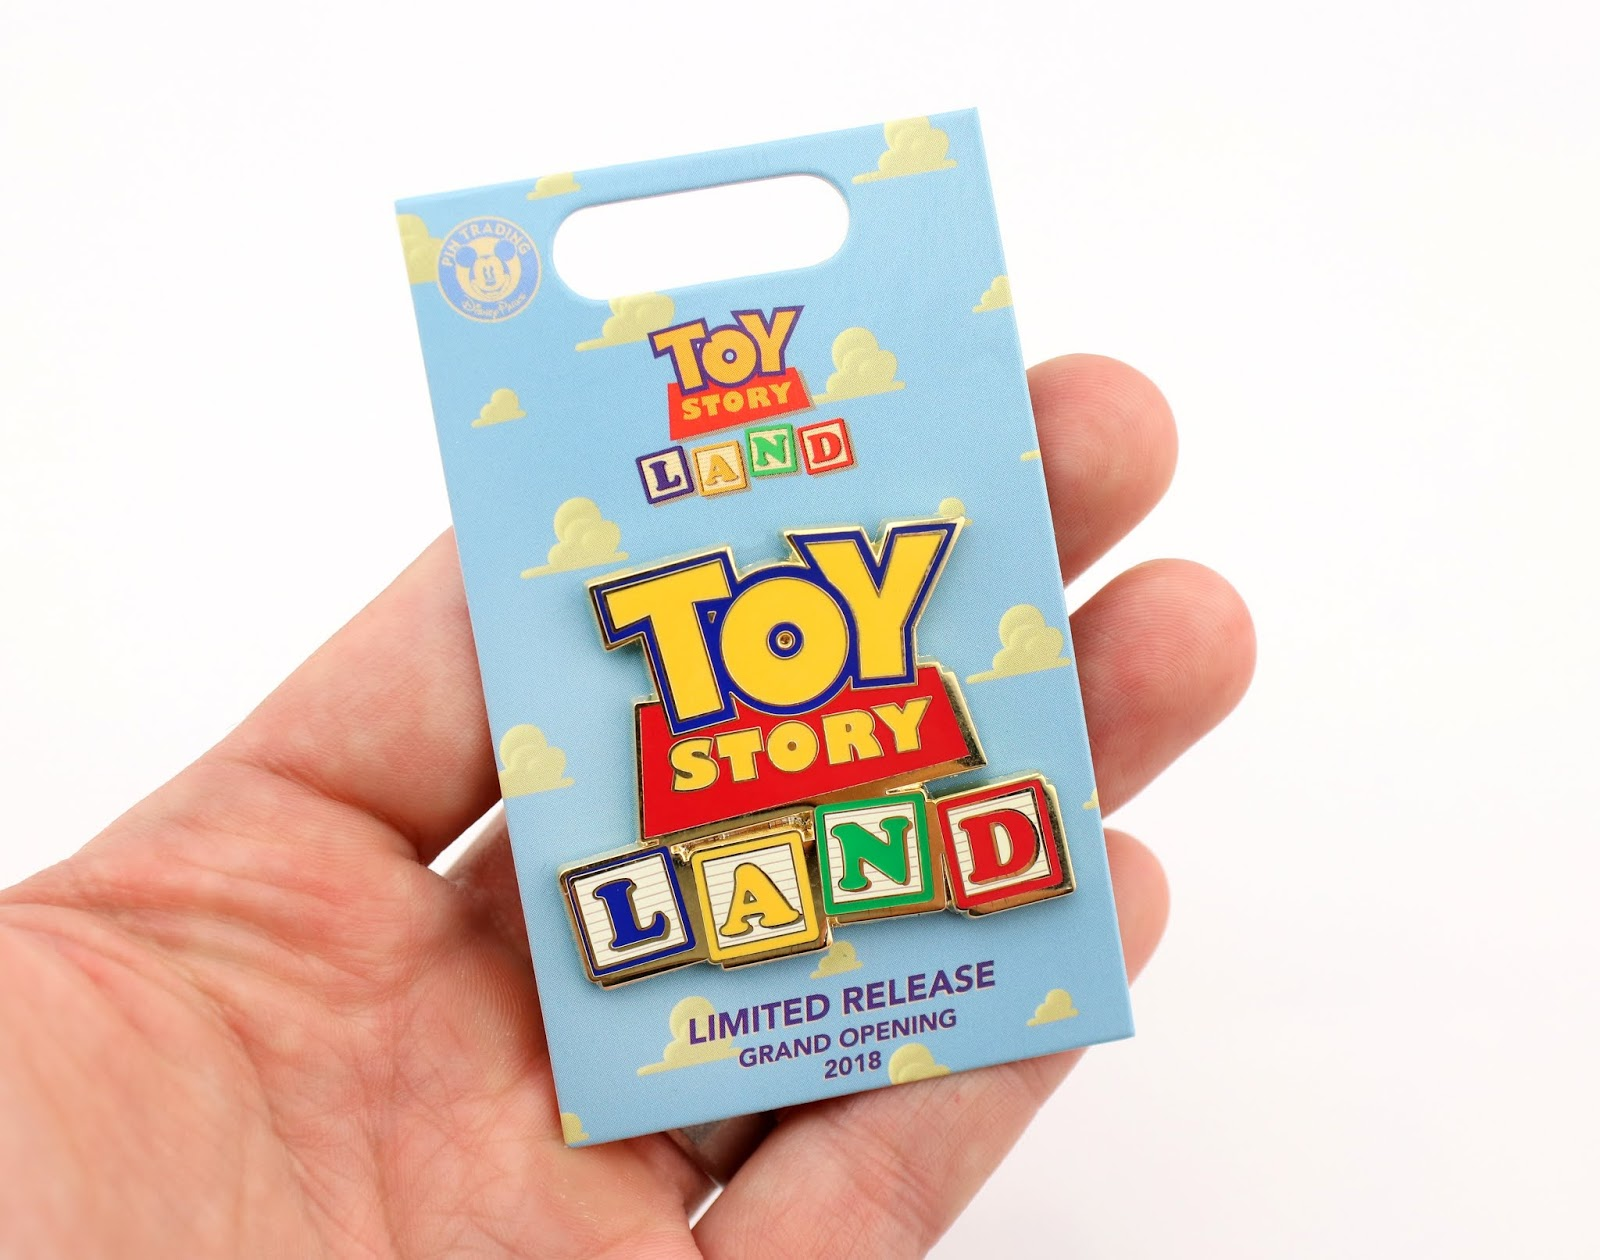 toy story land boxlunch logo pin